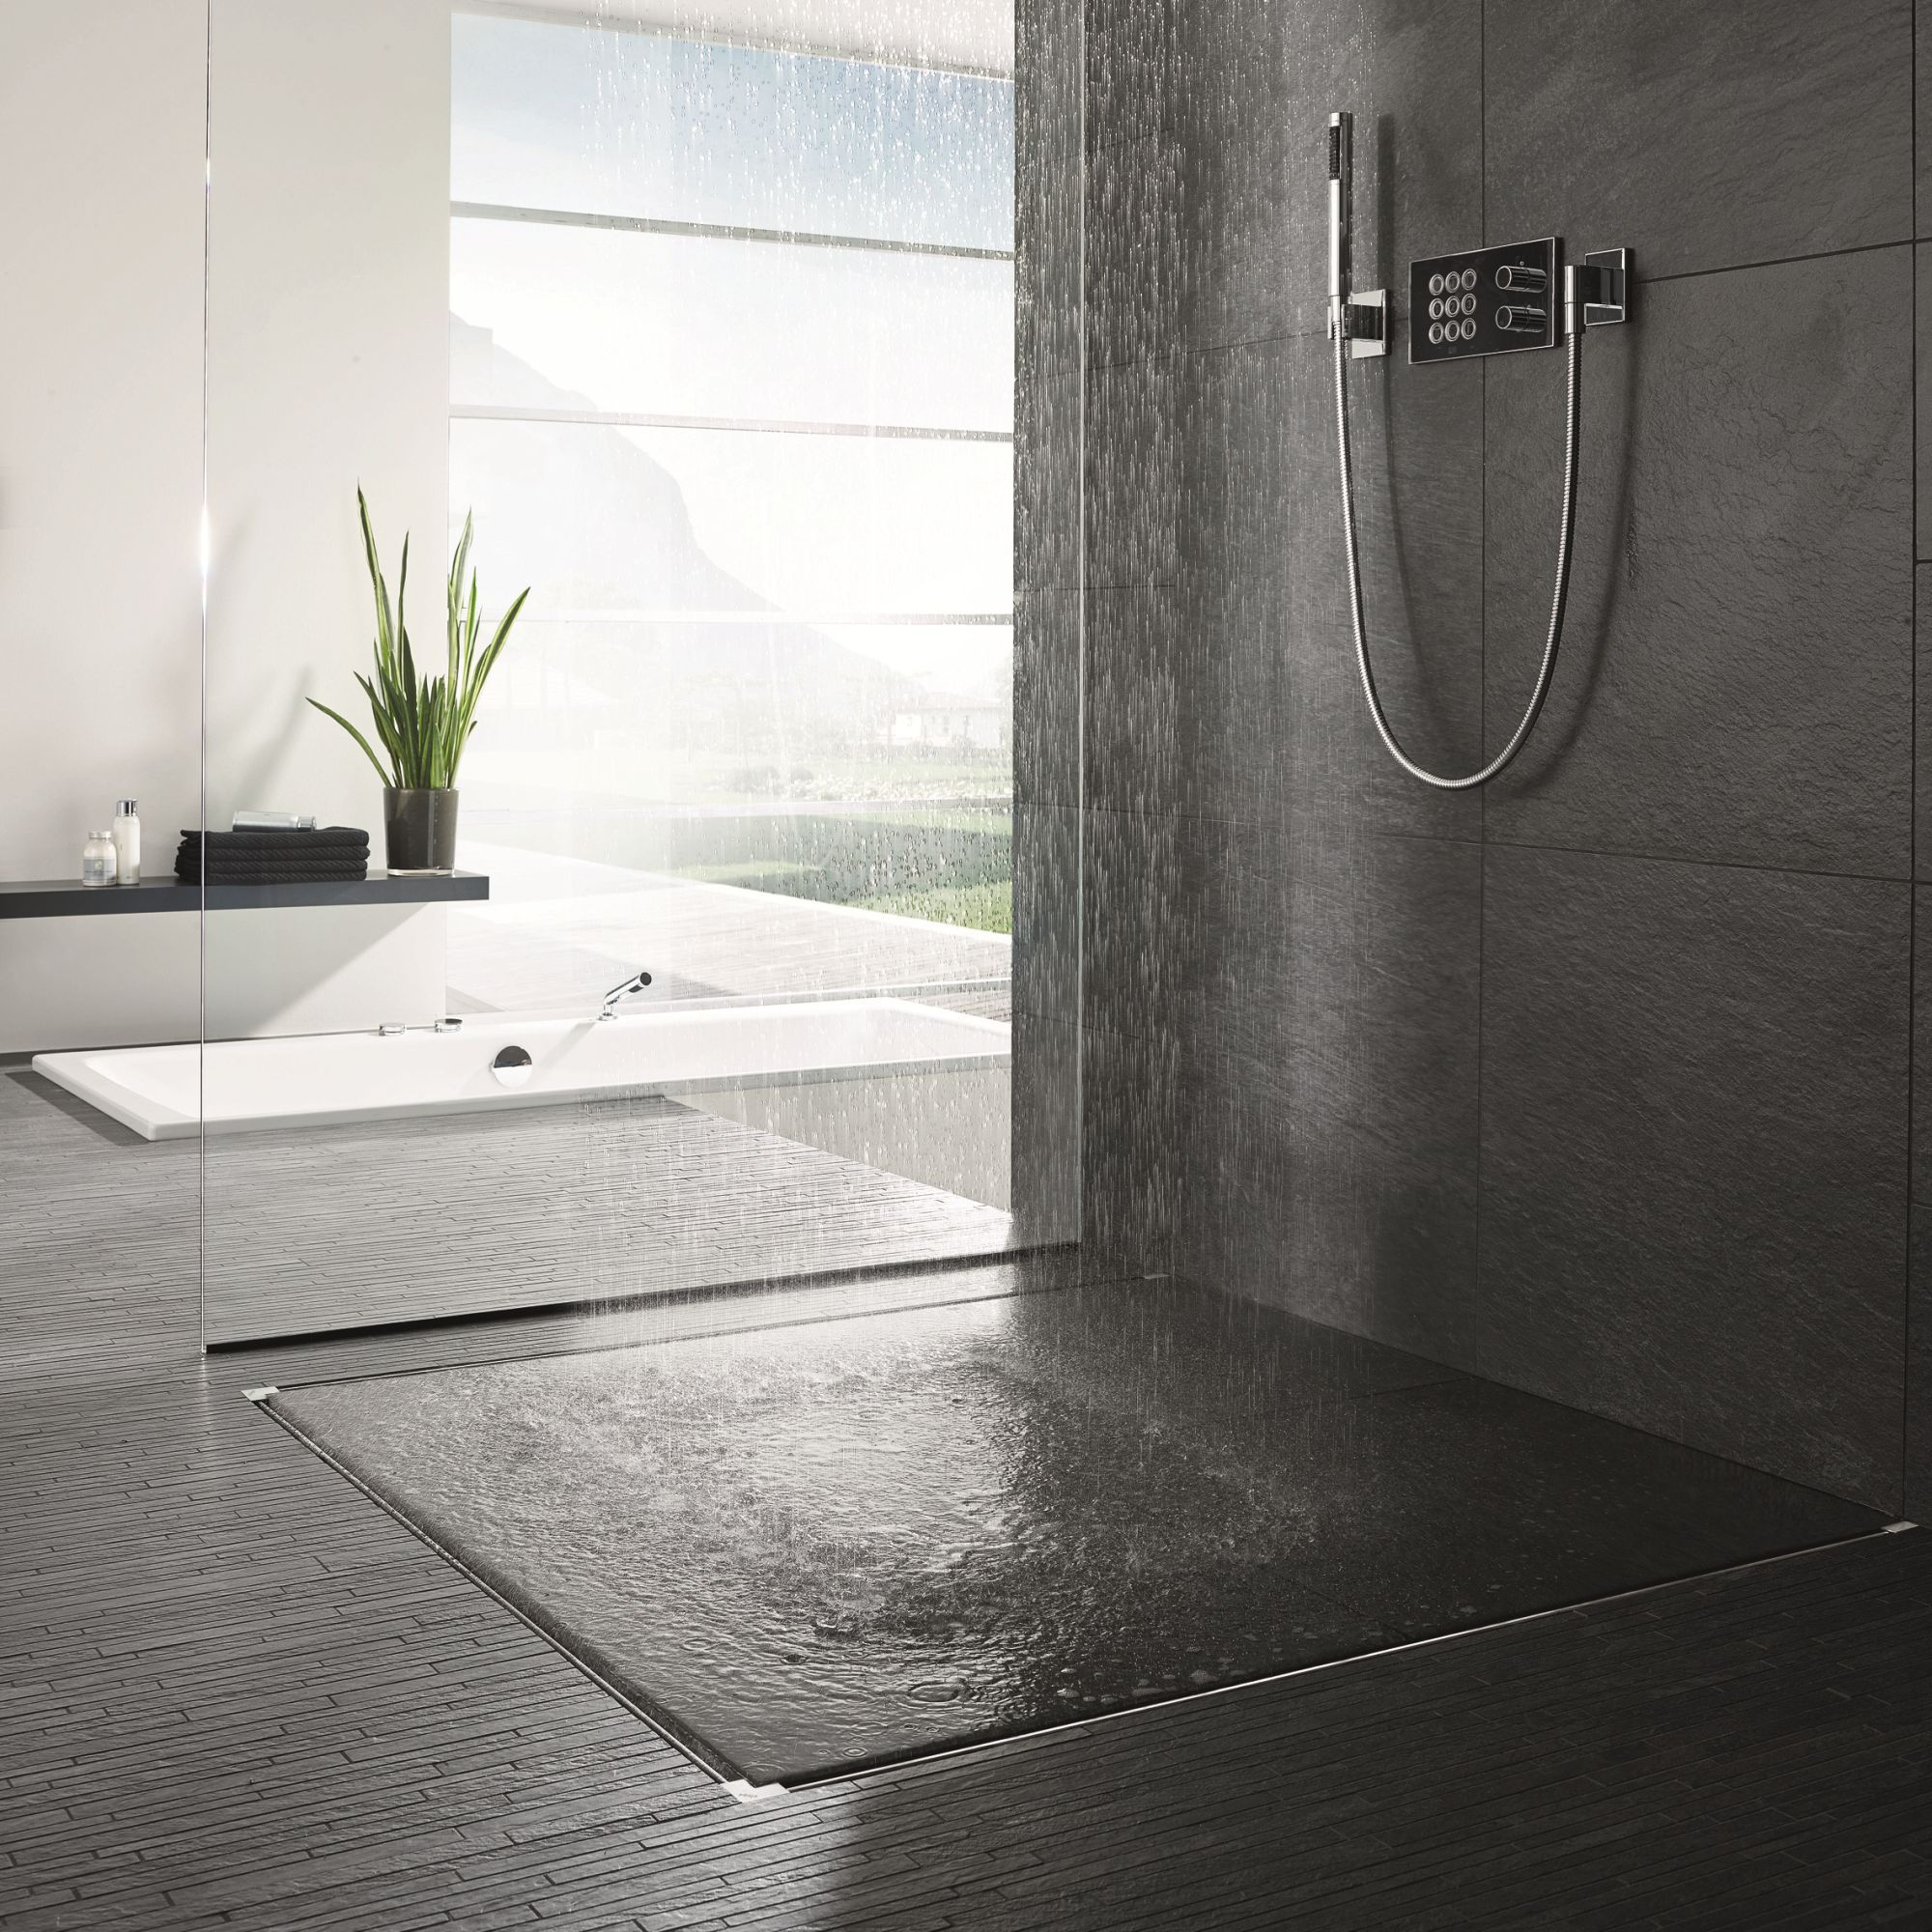 Invisible shower drain With Infinity Drain For Modern ...